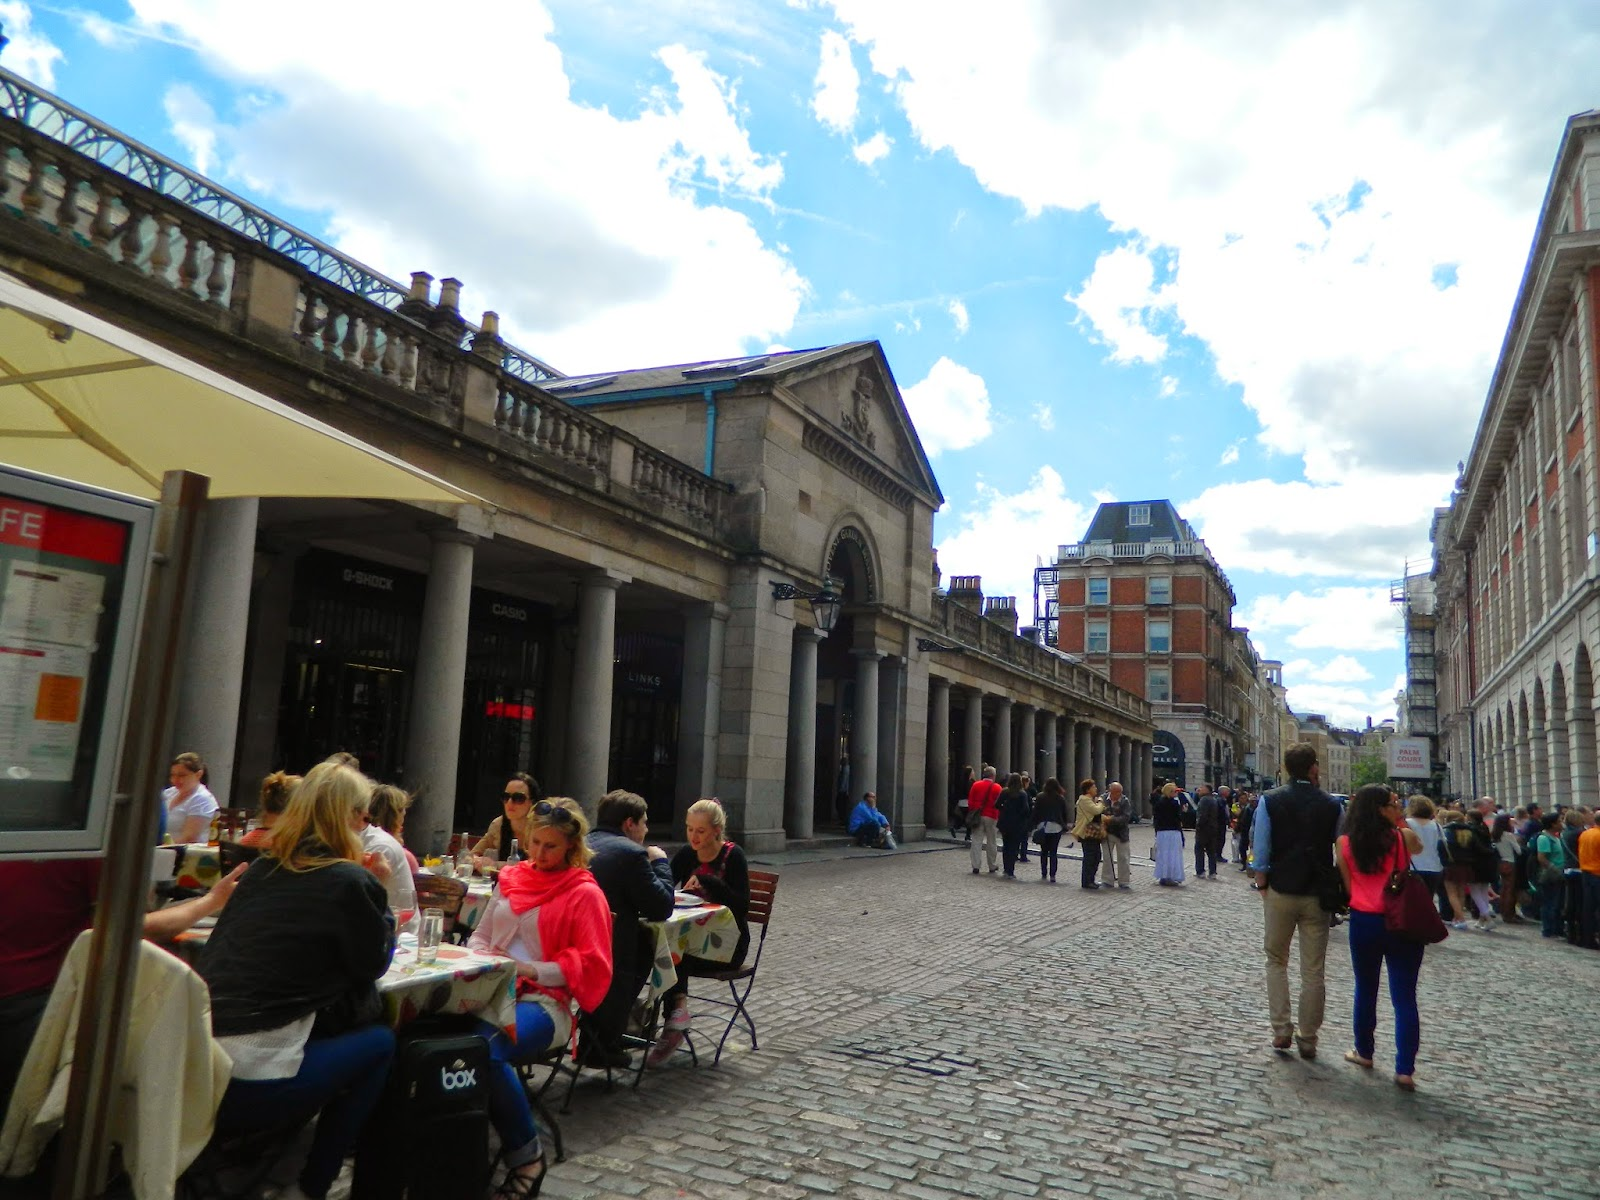 covent garden architecture people outside sun clear day summer roof eating sitting